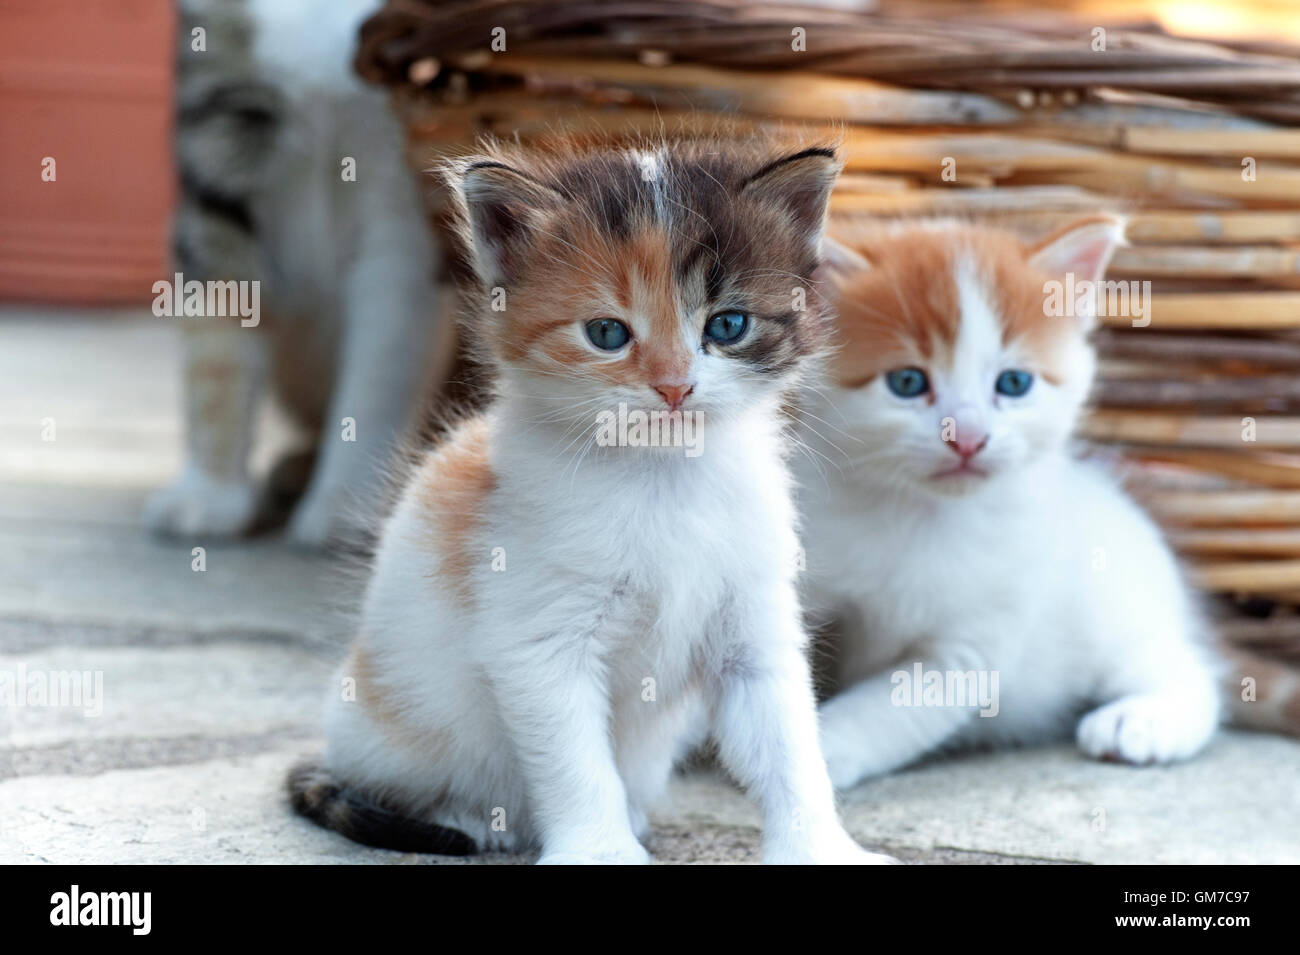 Two four weeks old kittens with their mother in the background - Stock Image